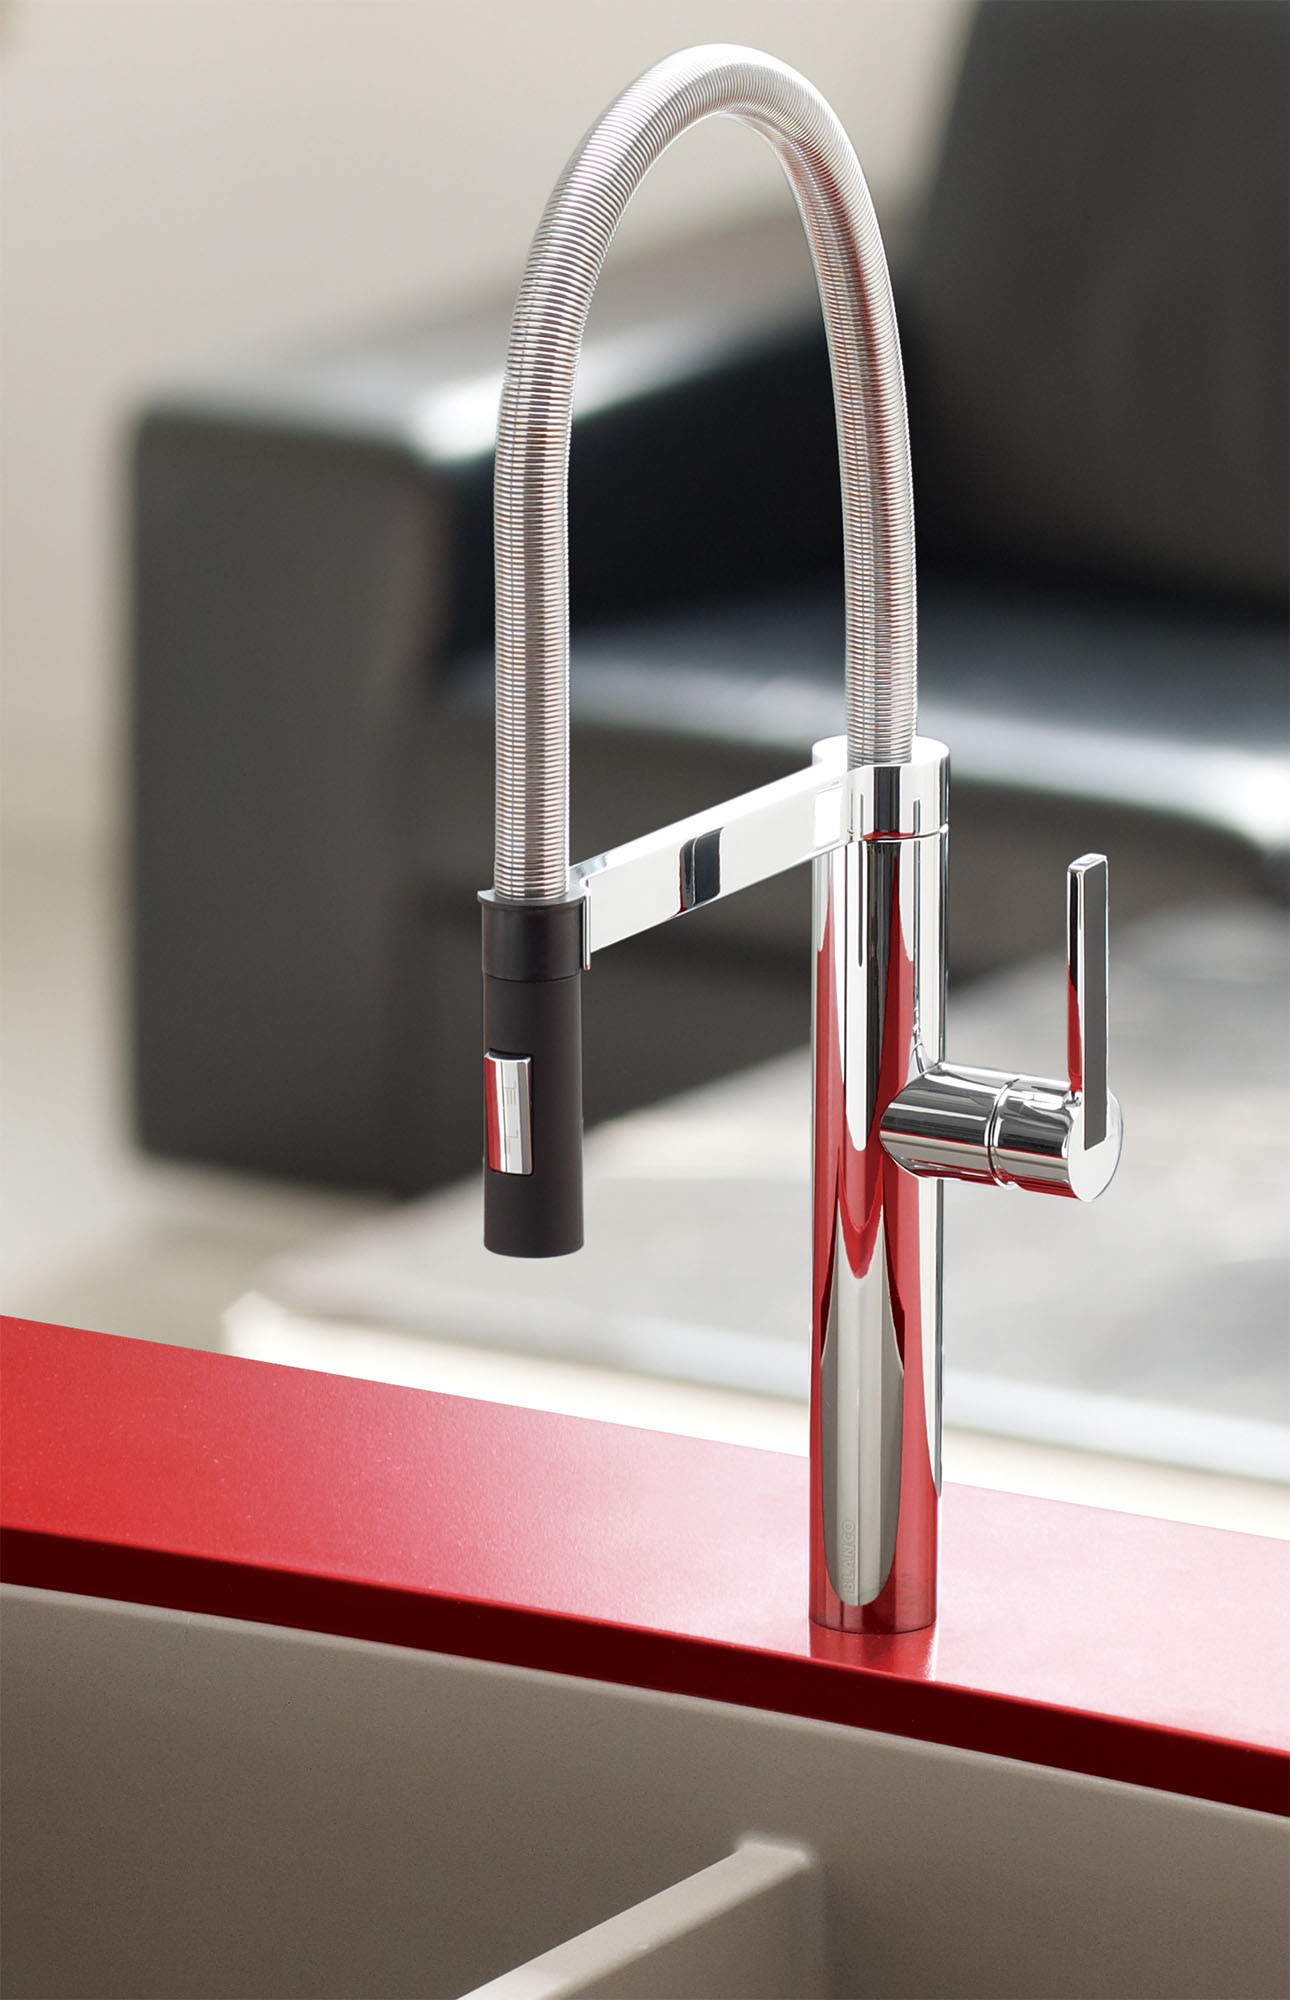 BLANCO CANADA INC. - BLANCO faucet wins international award